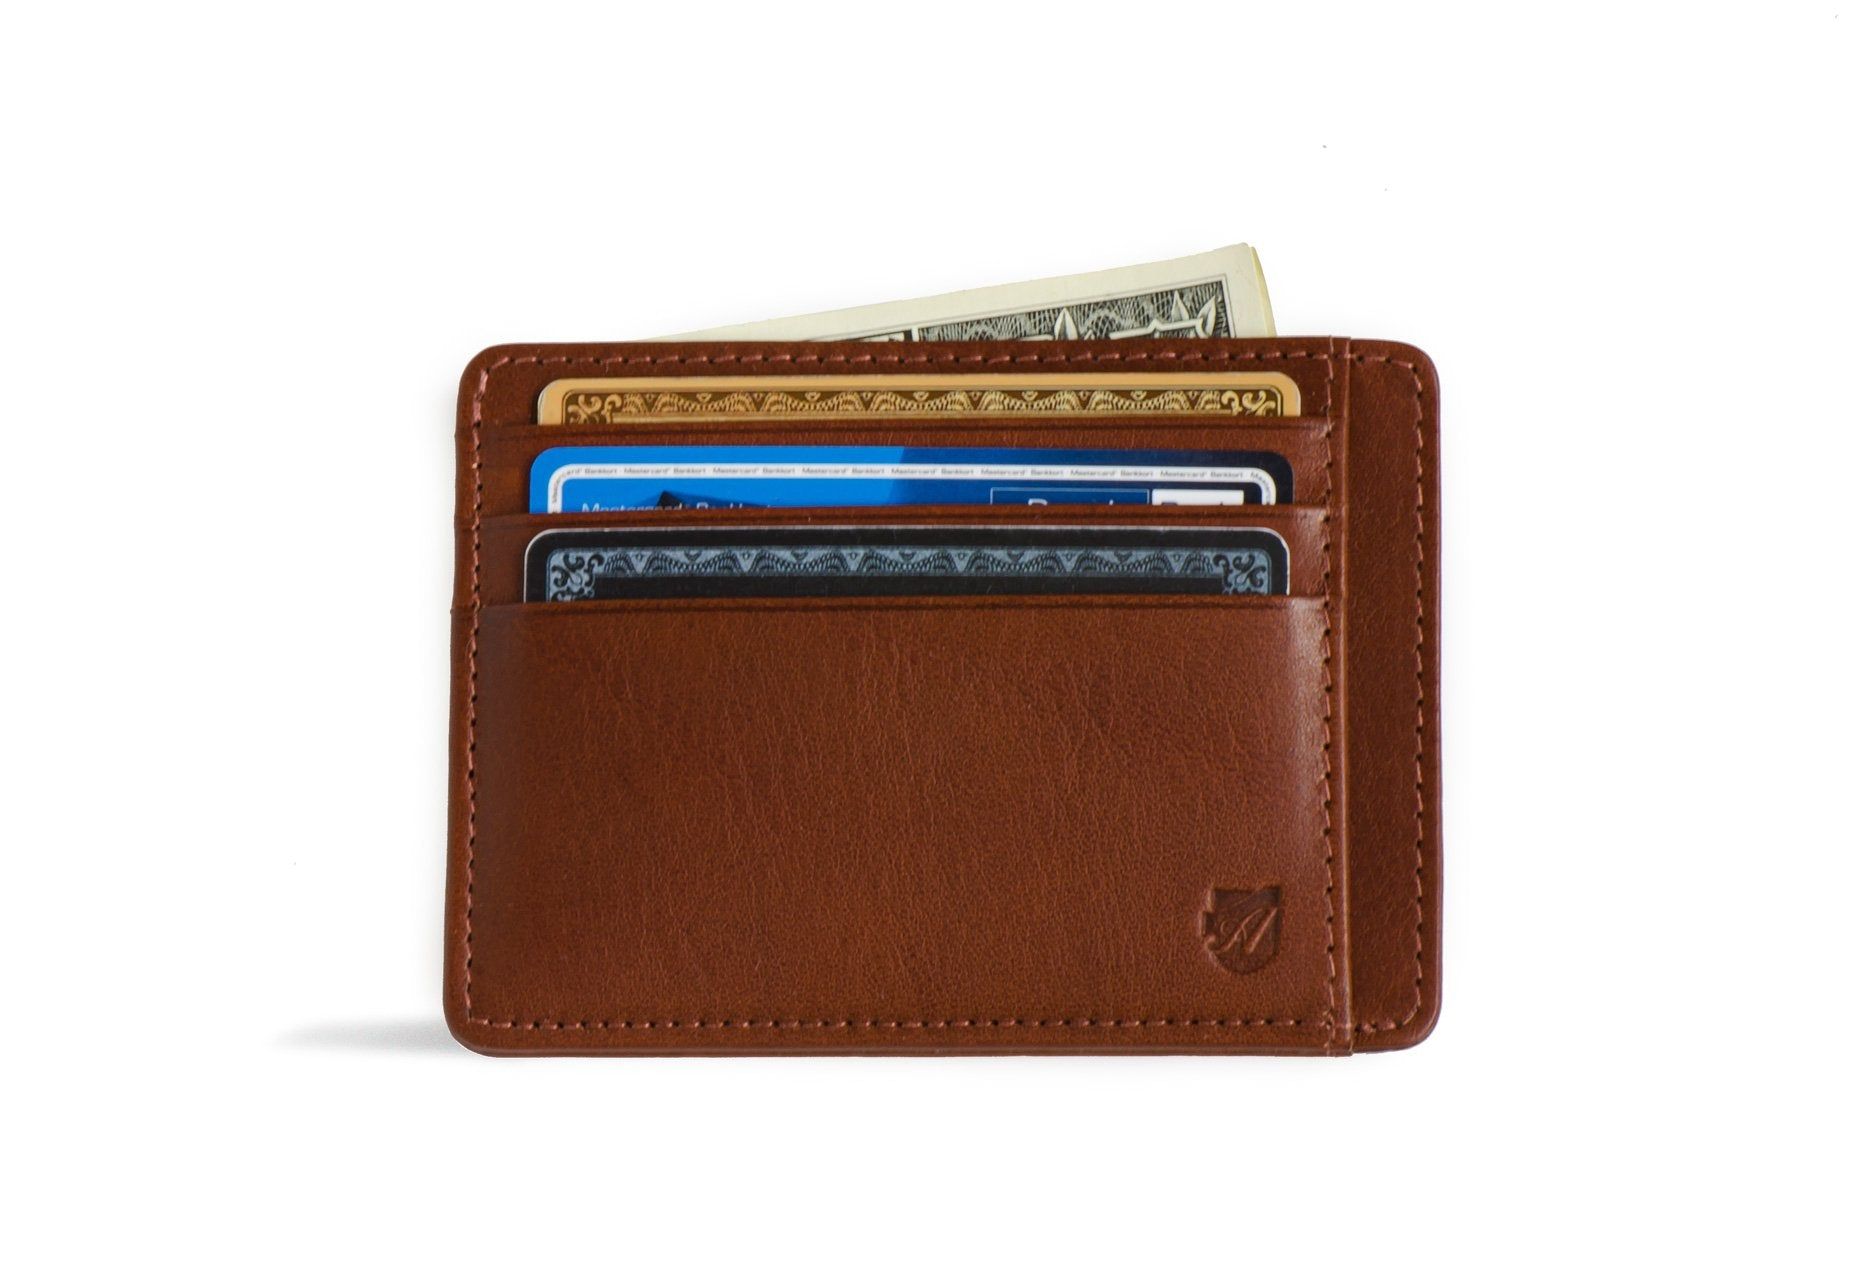 Minimalist Wallet - Vegetable Tanned Cognac